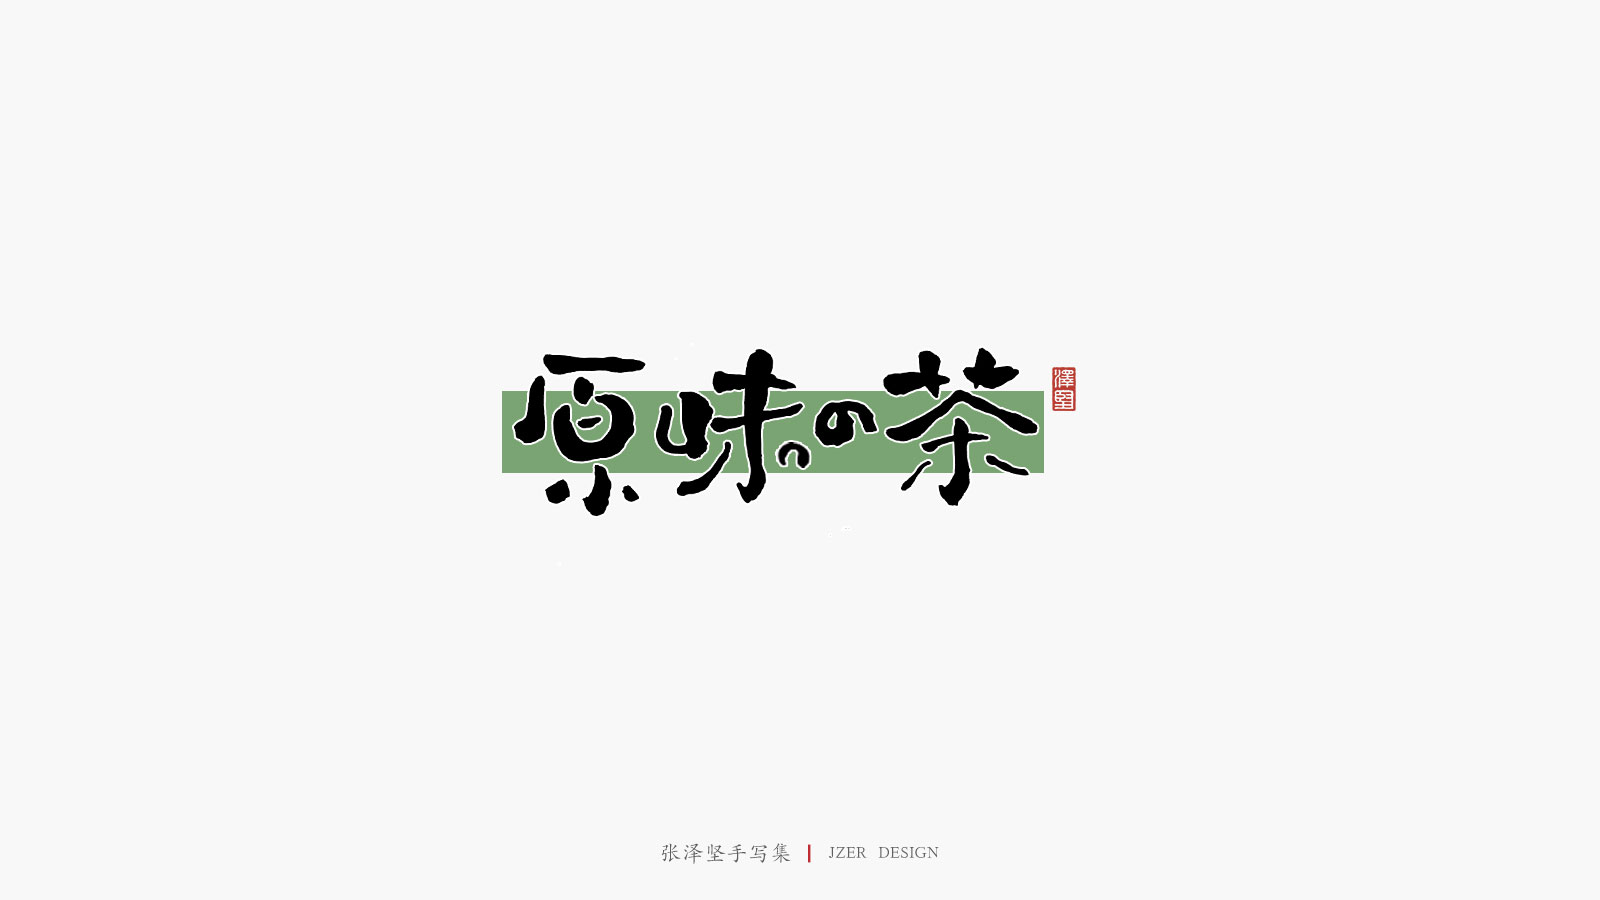 Interesting Chinese Creative Font Design-Collision between Handwriting and Color Block